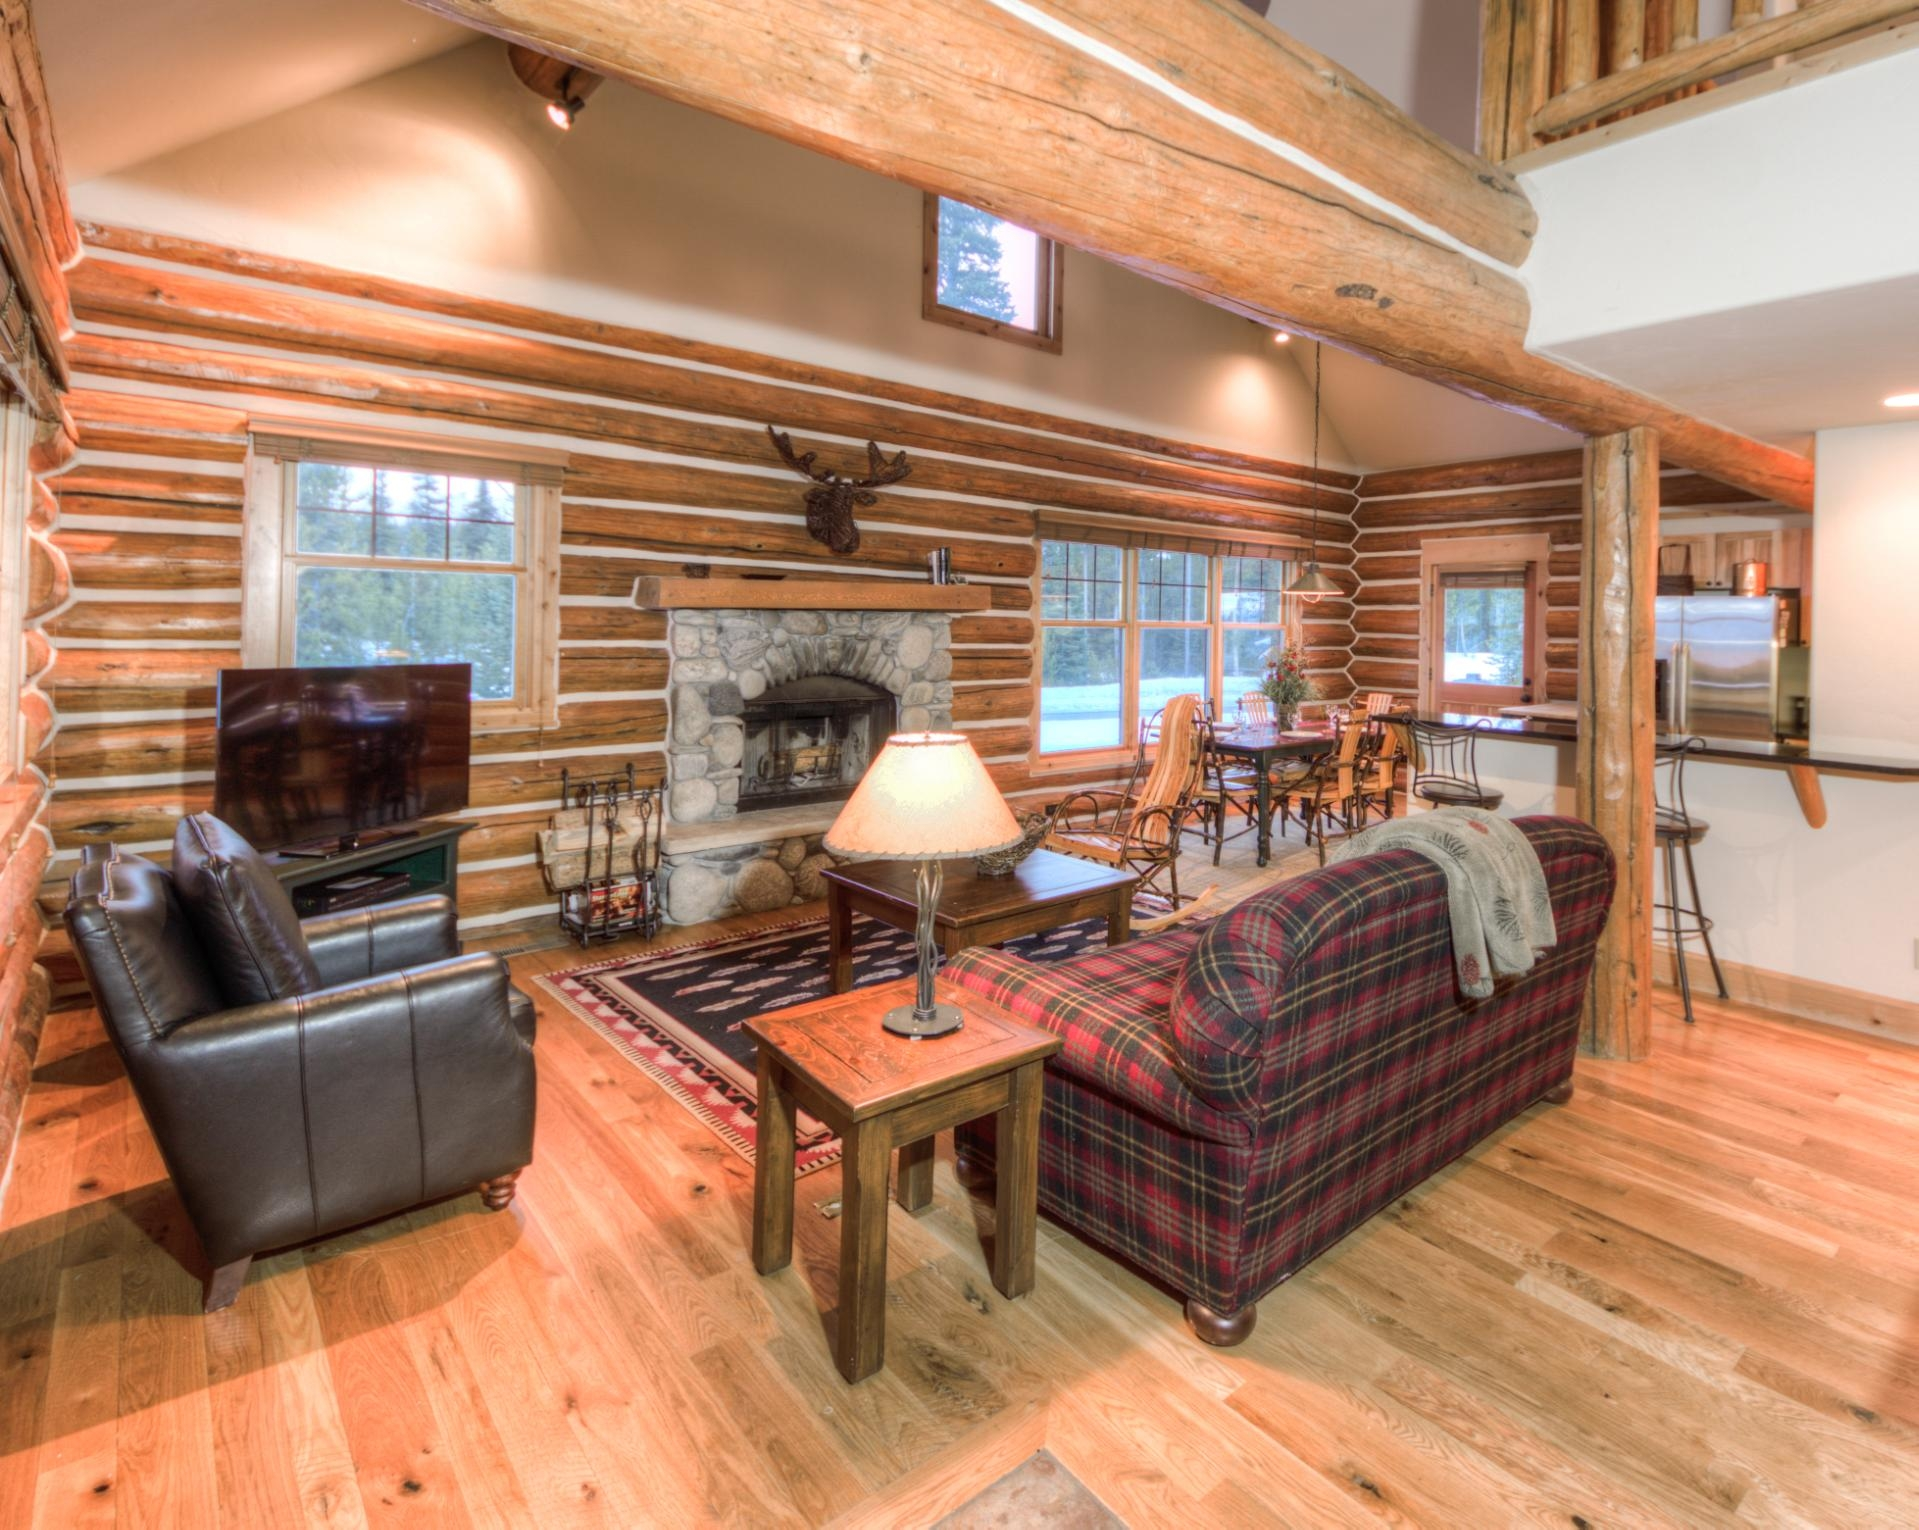 Luxury vacation rentals usa - Montana - Big sky resort - Powder Ridge Cabin | 1 Little Shadow Catcher - Image 1/37